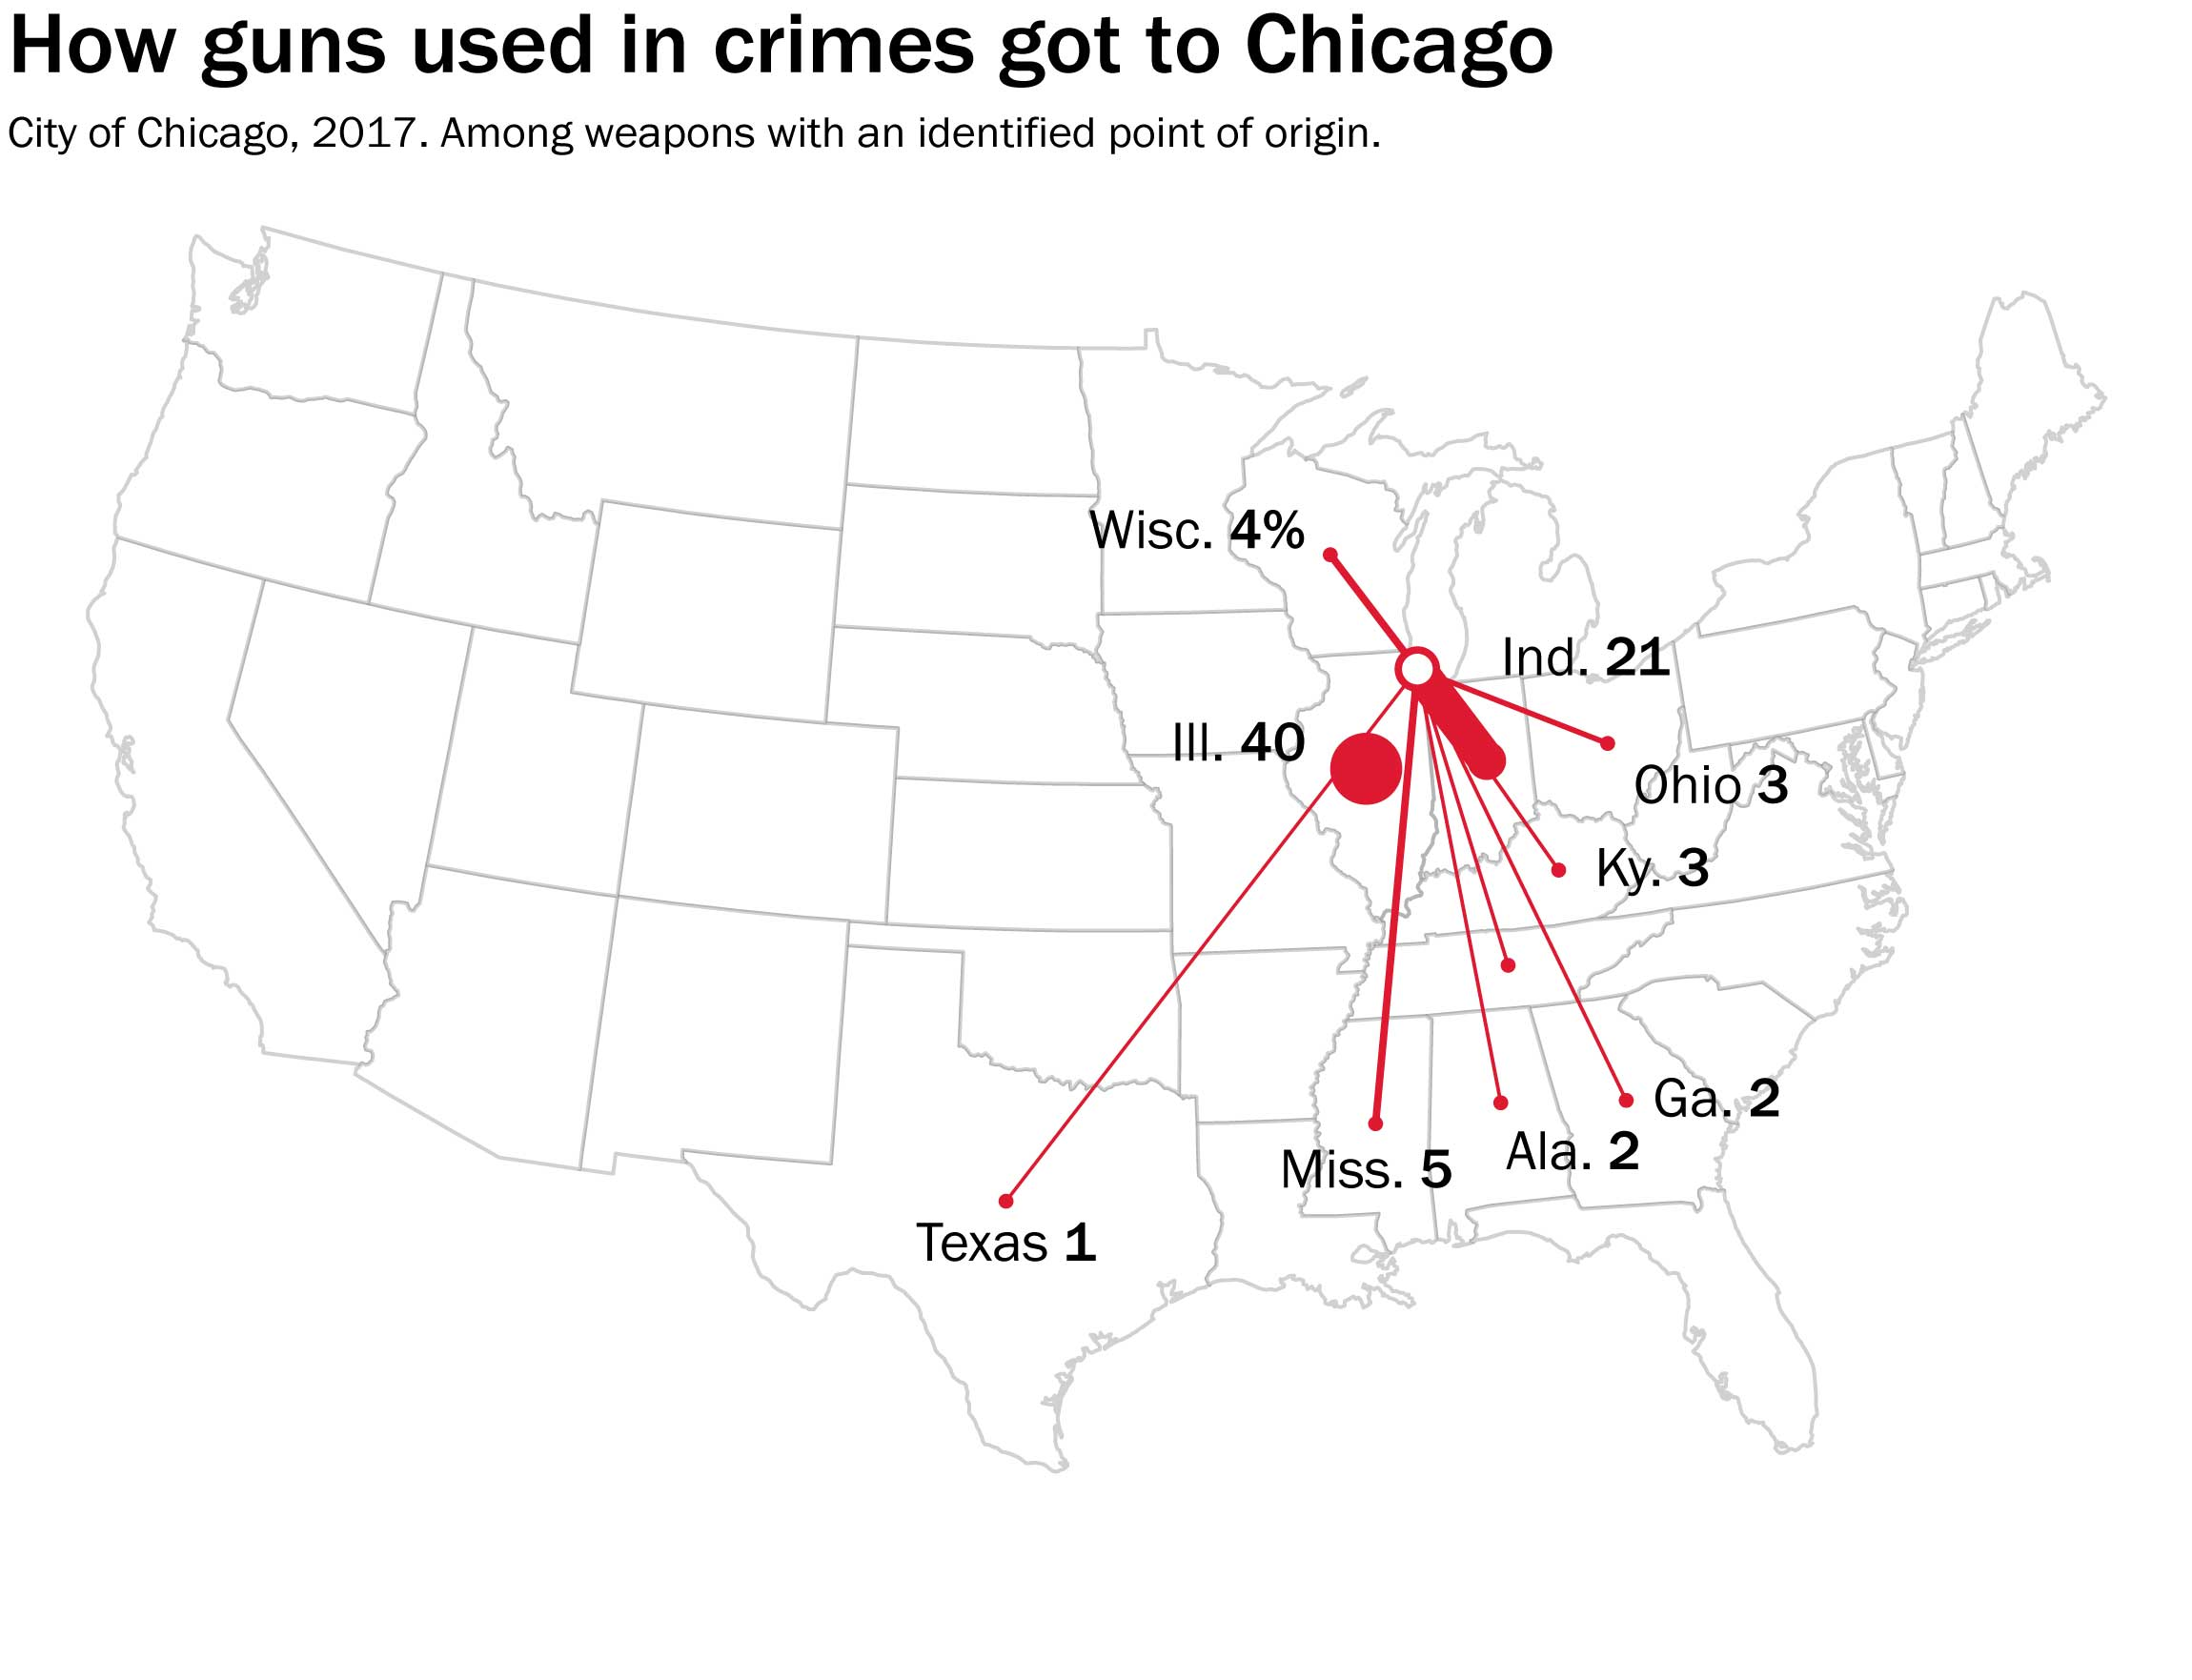 Where the guns used in Chicago actually came from - The Washington on gun deaths per capita by state, gay rights by state map, gun laws in all states, union right work state map, immigration by state map, poverty united states map, united states concealed carry map, concealed carry by state map, anti safe act gun law map, gun reciprocity map, gun right laws, gun law in the united states, gun homicide rates united states, stand your ground law state map, gun shootings by state, politics by state map, gun deaths by state 2014, maps of united states map, gun rights in us, nfl fans by state map,